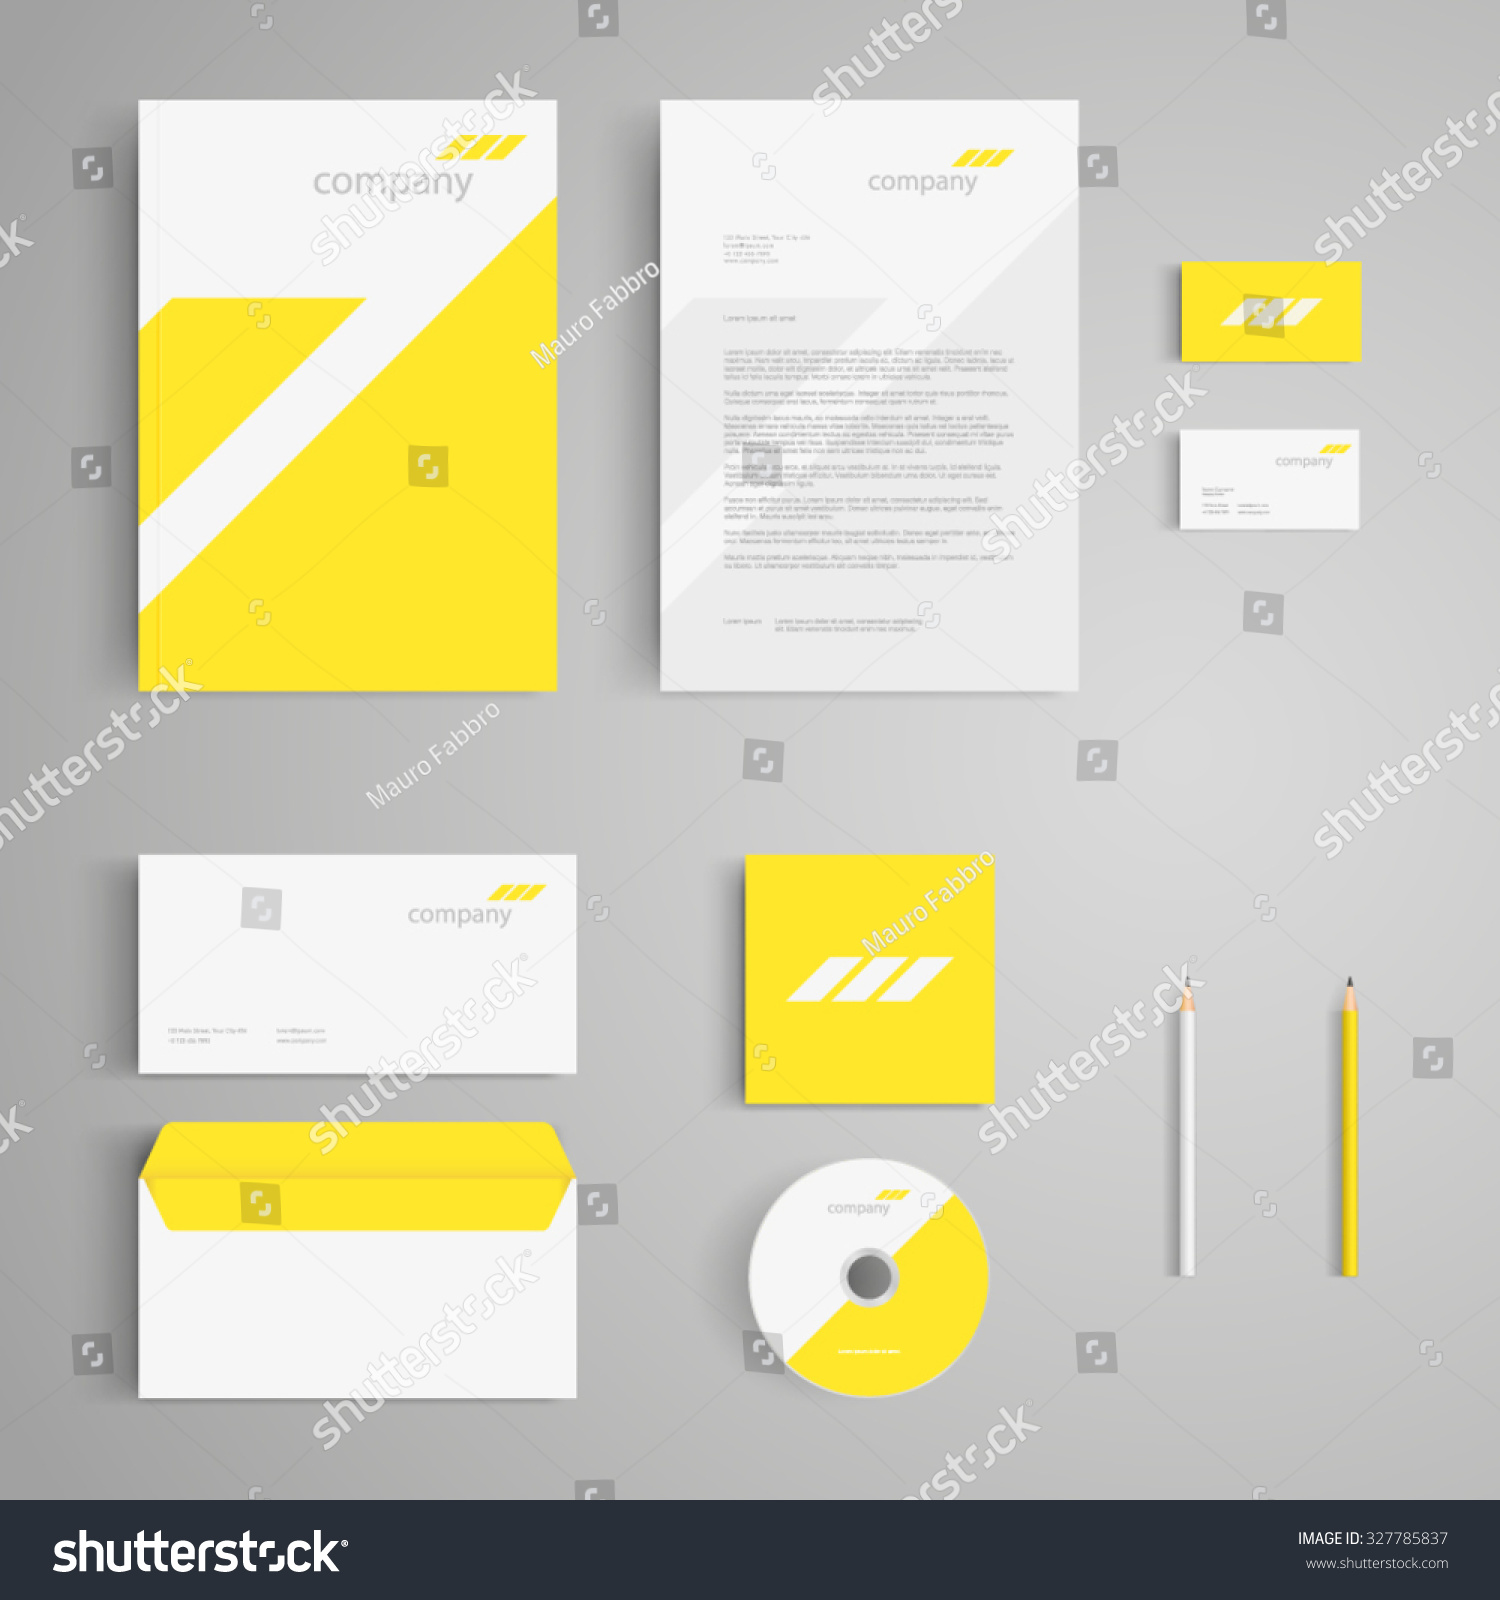 Clean Corporate Letterhead Template: Stationery Template Logo Corporate Identity Company Stock